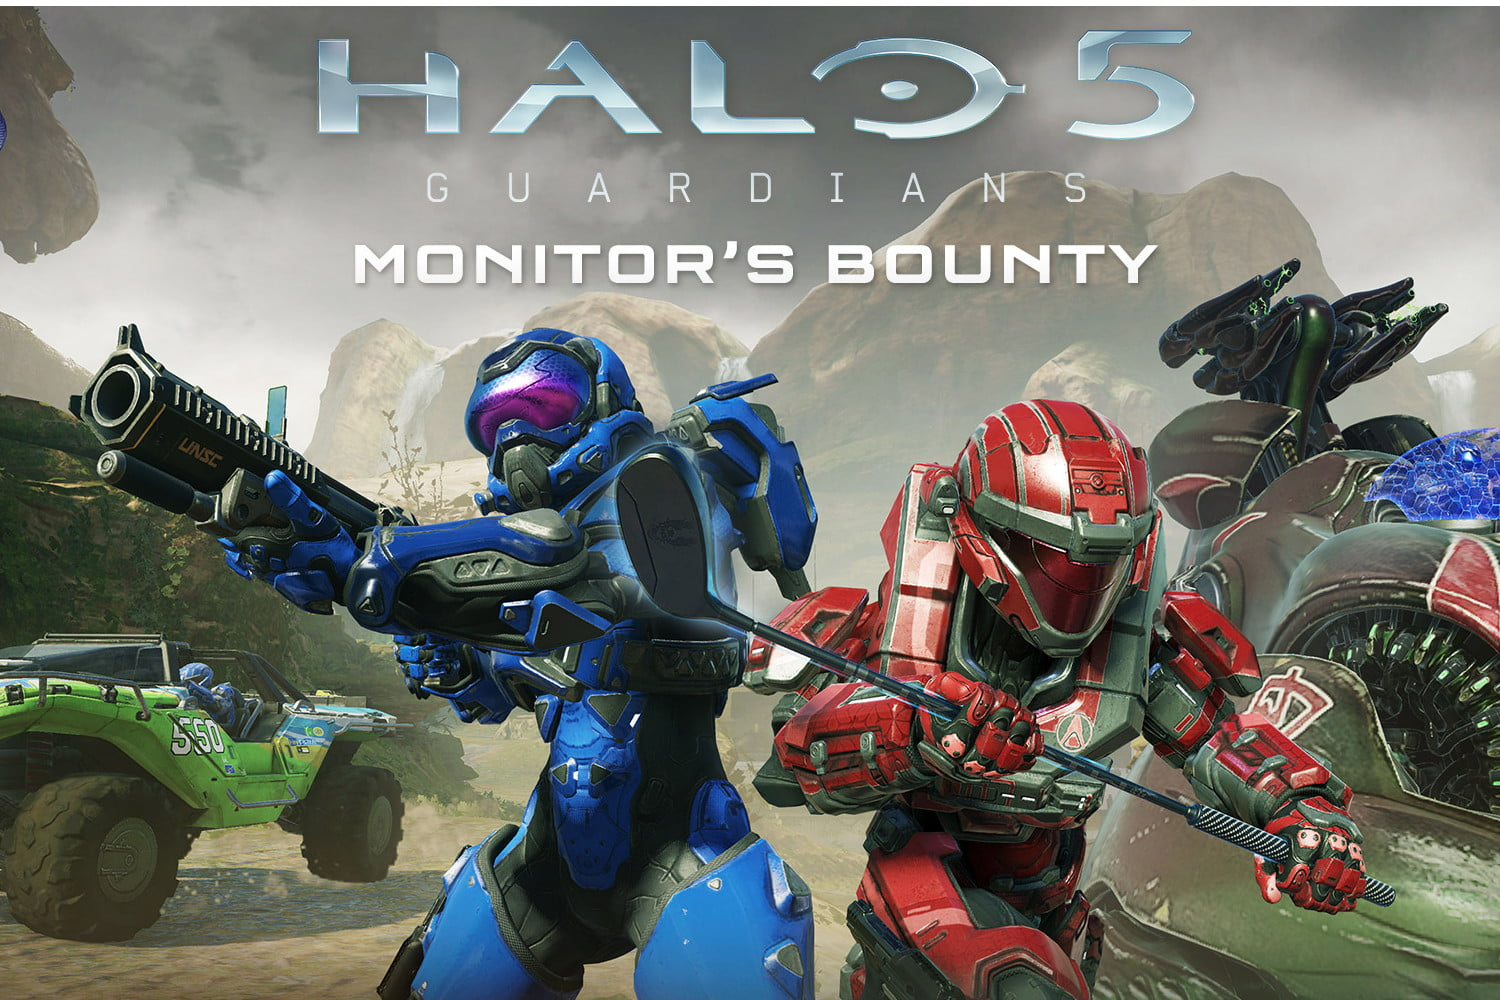 Halo 5: Forge' on PC Gets Arena, Monitor's Bounty Thursday